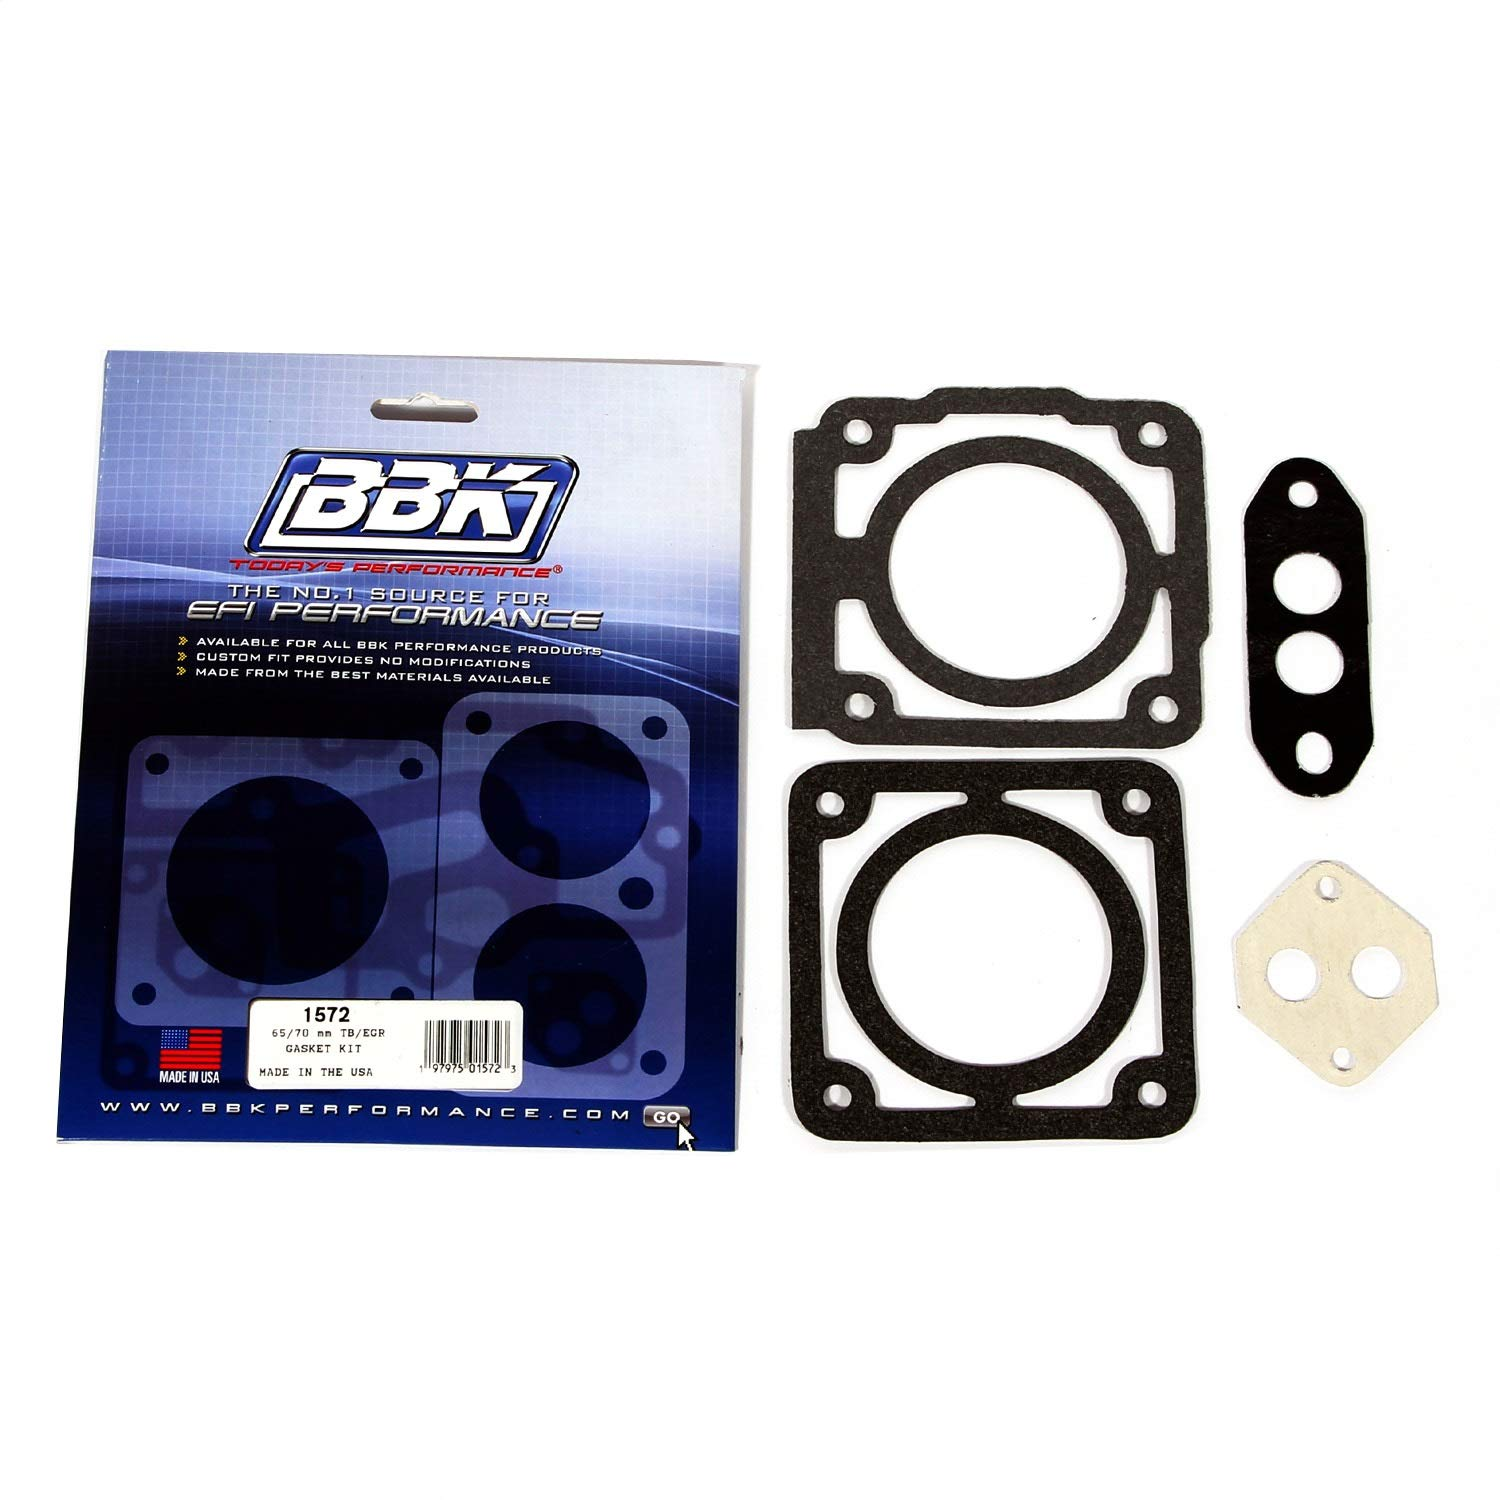 BBK 1572 65/70mm Throttle Body Gasket Kit for Ford 5.0L BBK Performance Parts